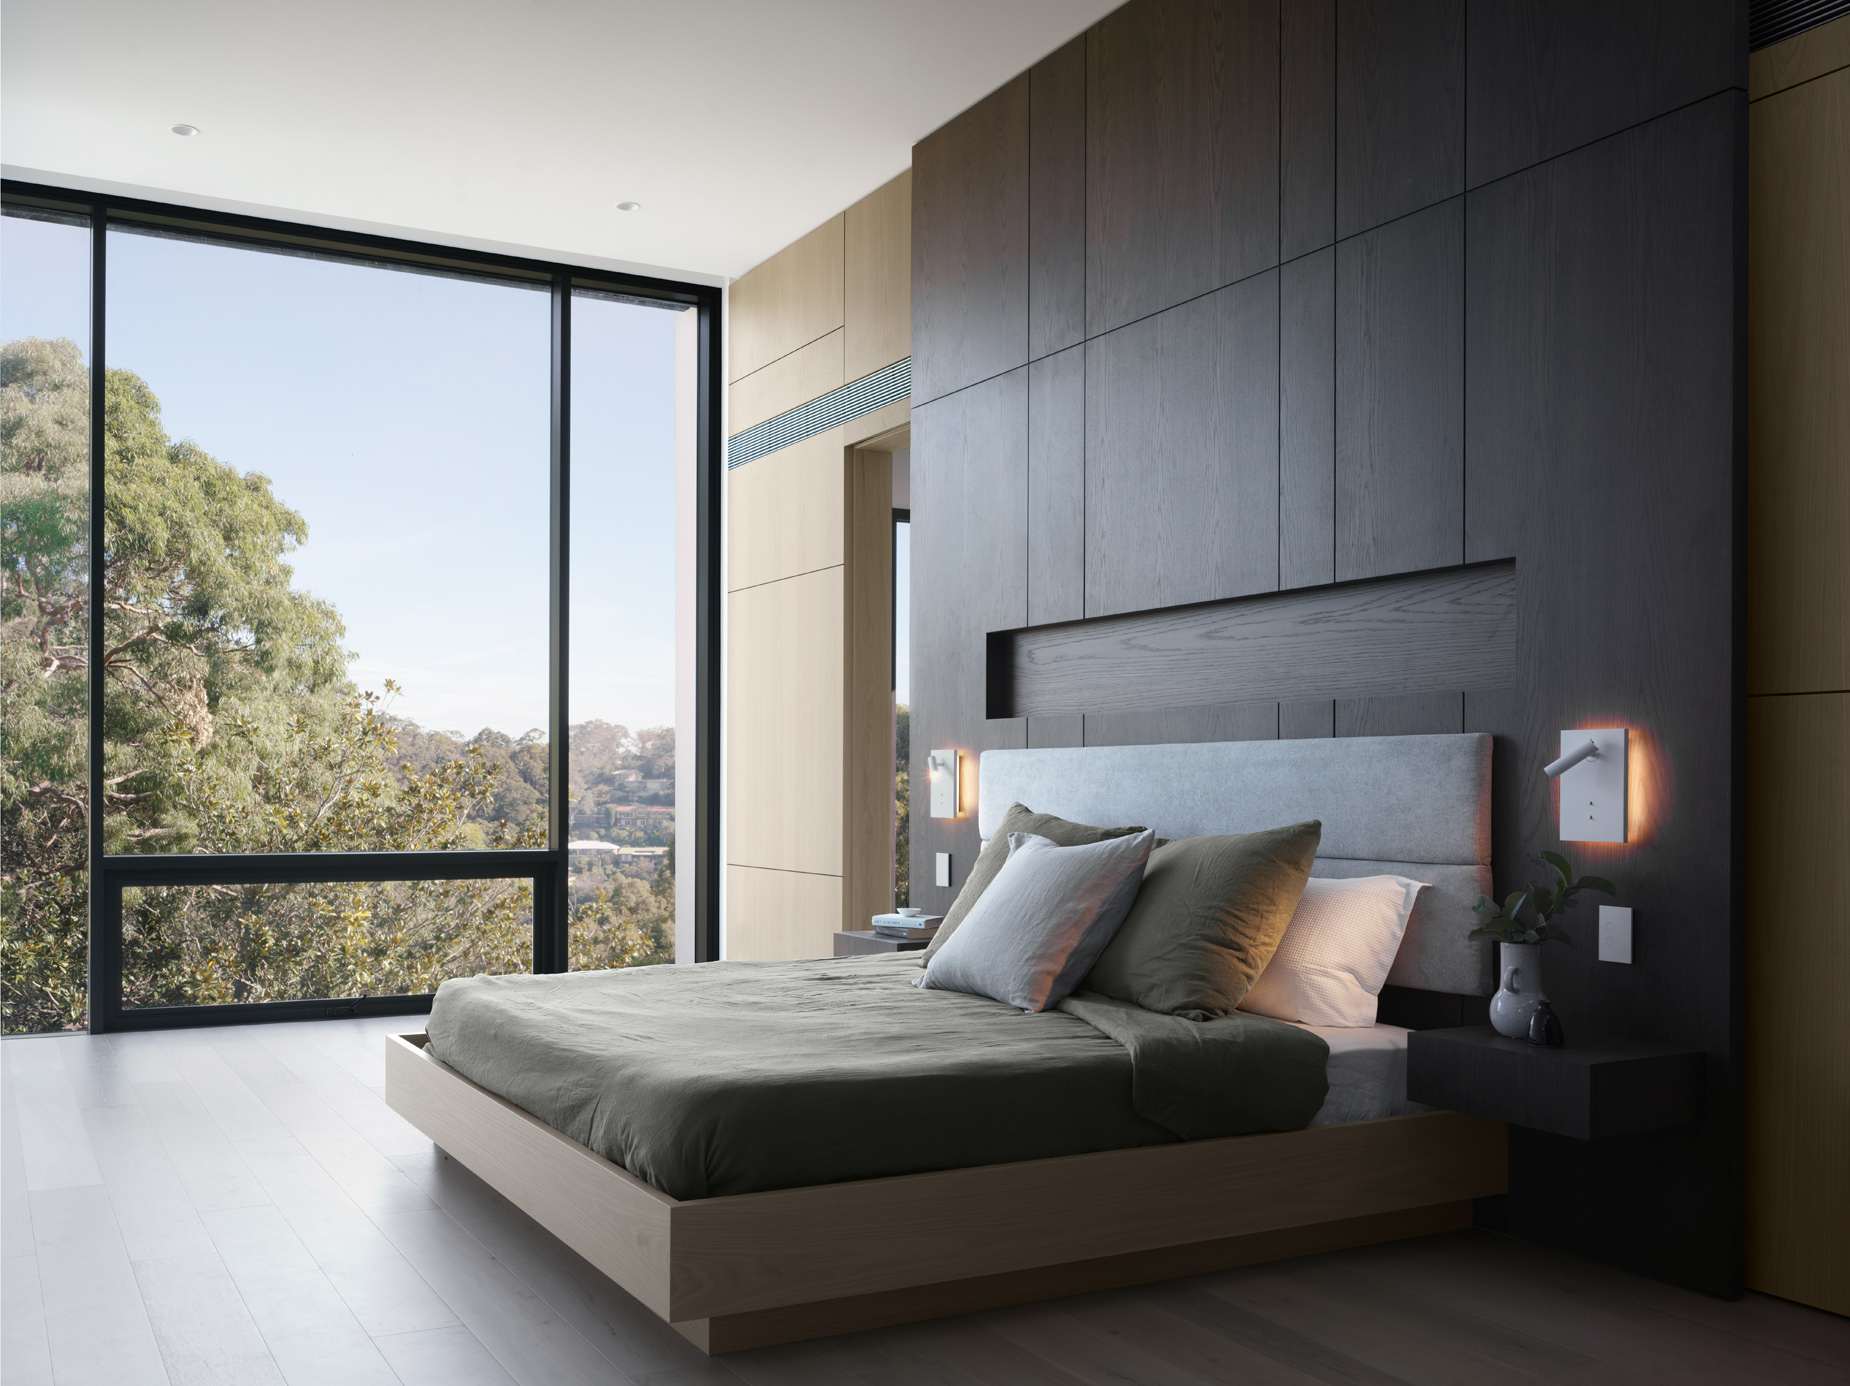 luke-butterly-2020-Cove-Cove-House-by-Dieppe-Design-Architecture-Sydney-NSW-9